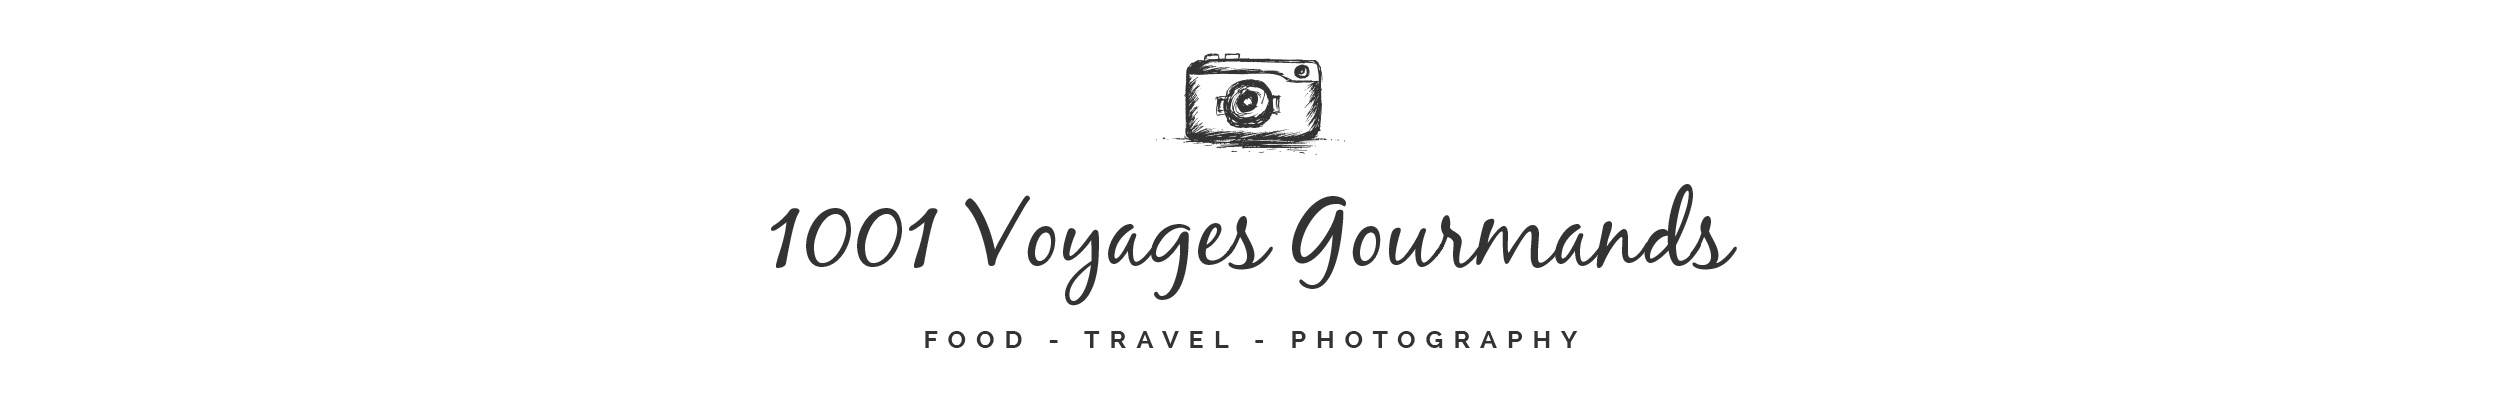 1001 Voyages Gourmands